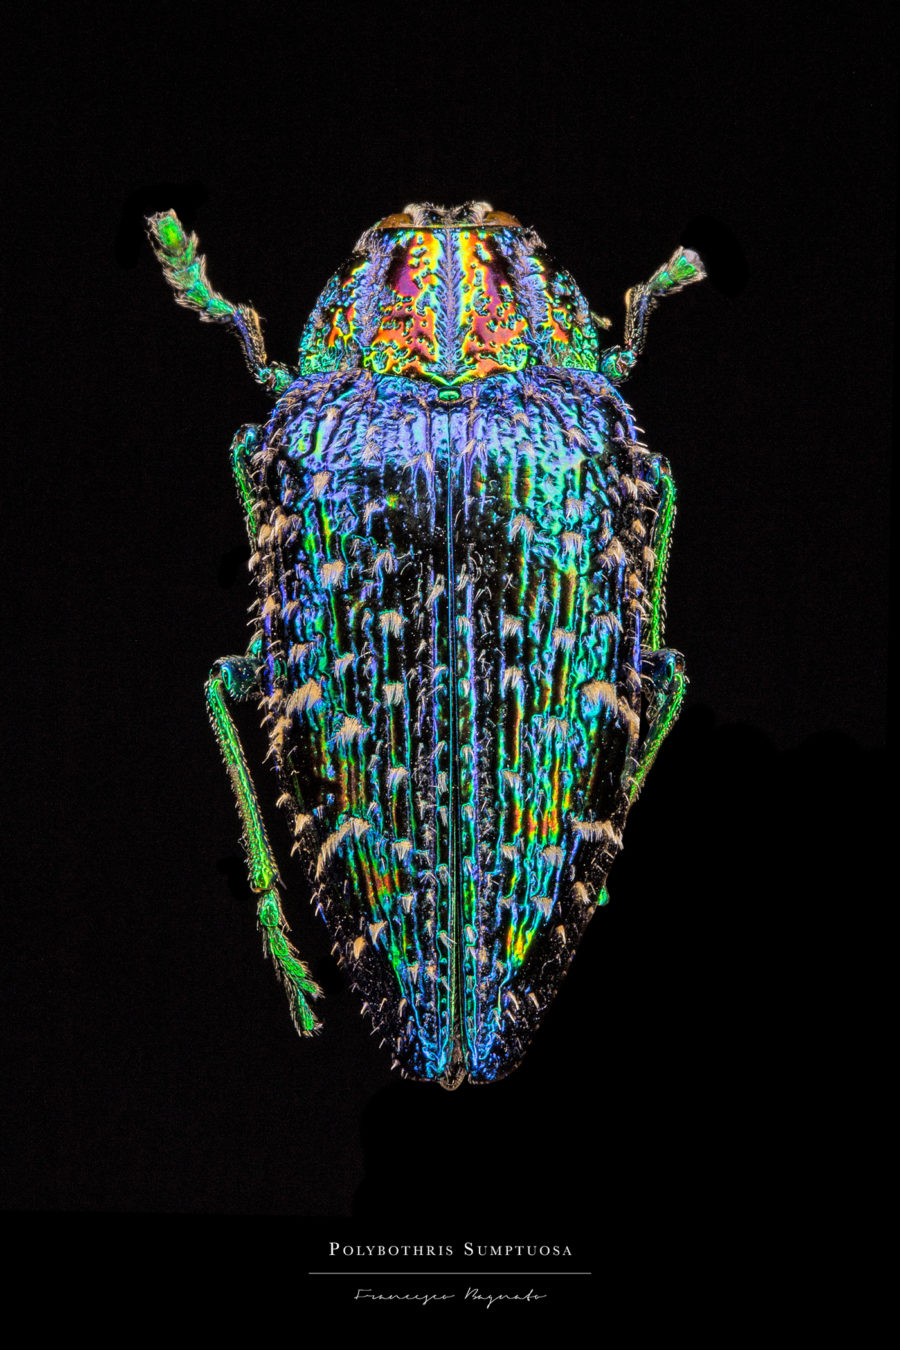 Stunning Pictures of Colorful Insects 7 Beautiful Pictures of Colorful Insects